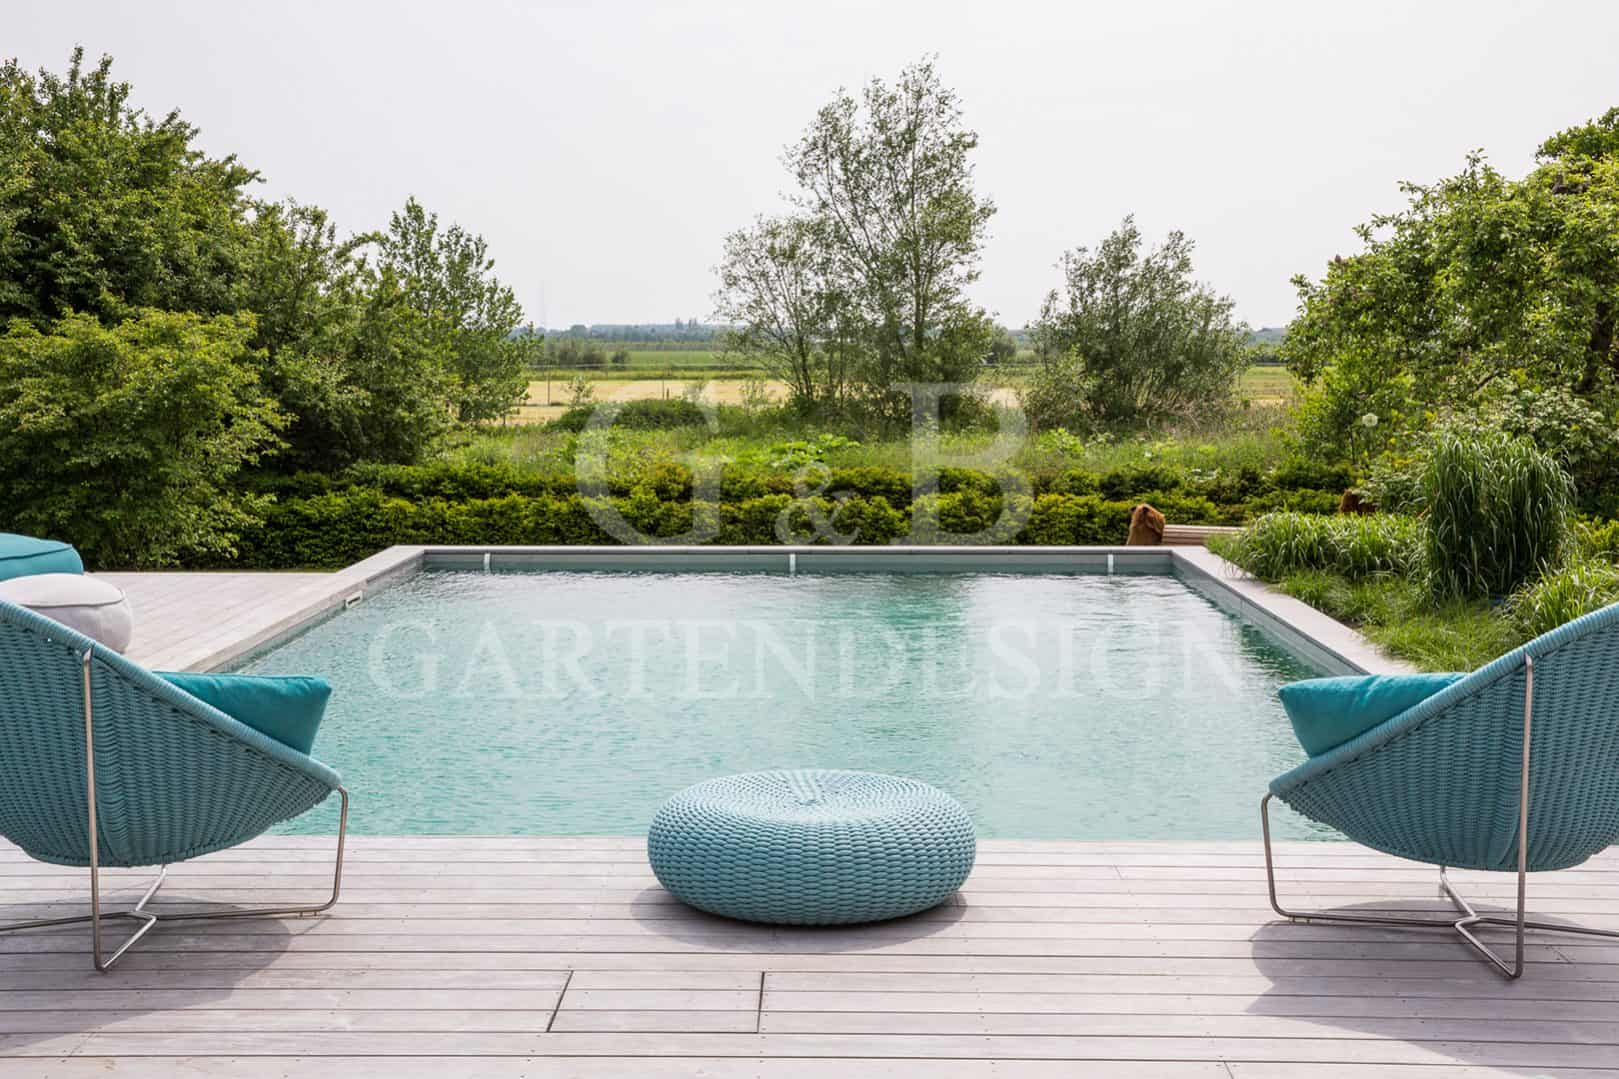 wellnessgarten mit swimmingpool schleswig holstein gempp gartendesign. Black Bedroom Furniture Sets. Home Design Ideas